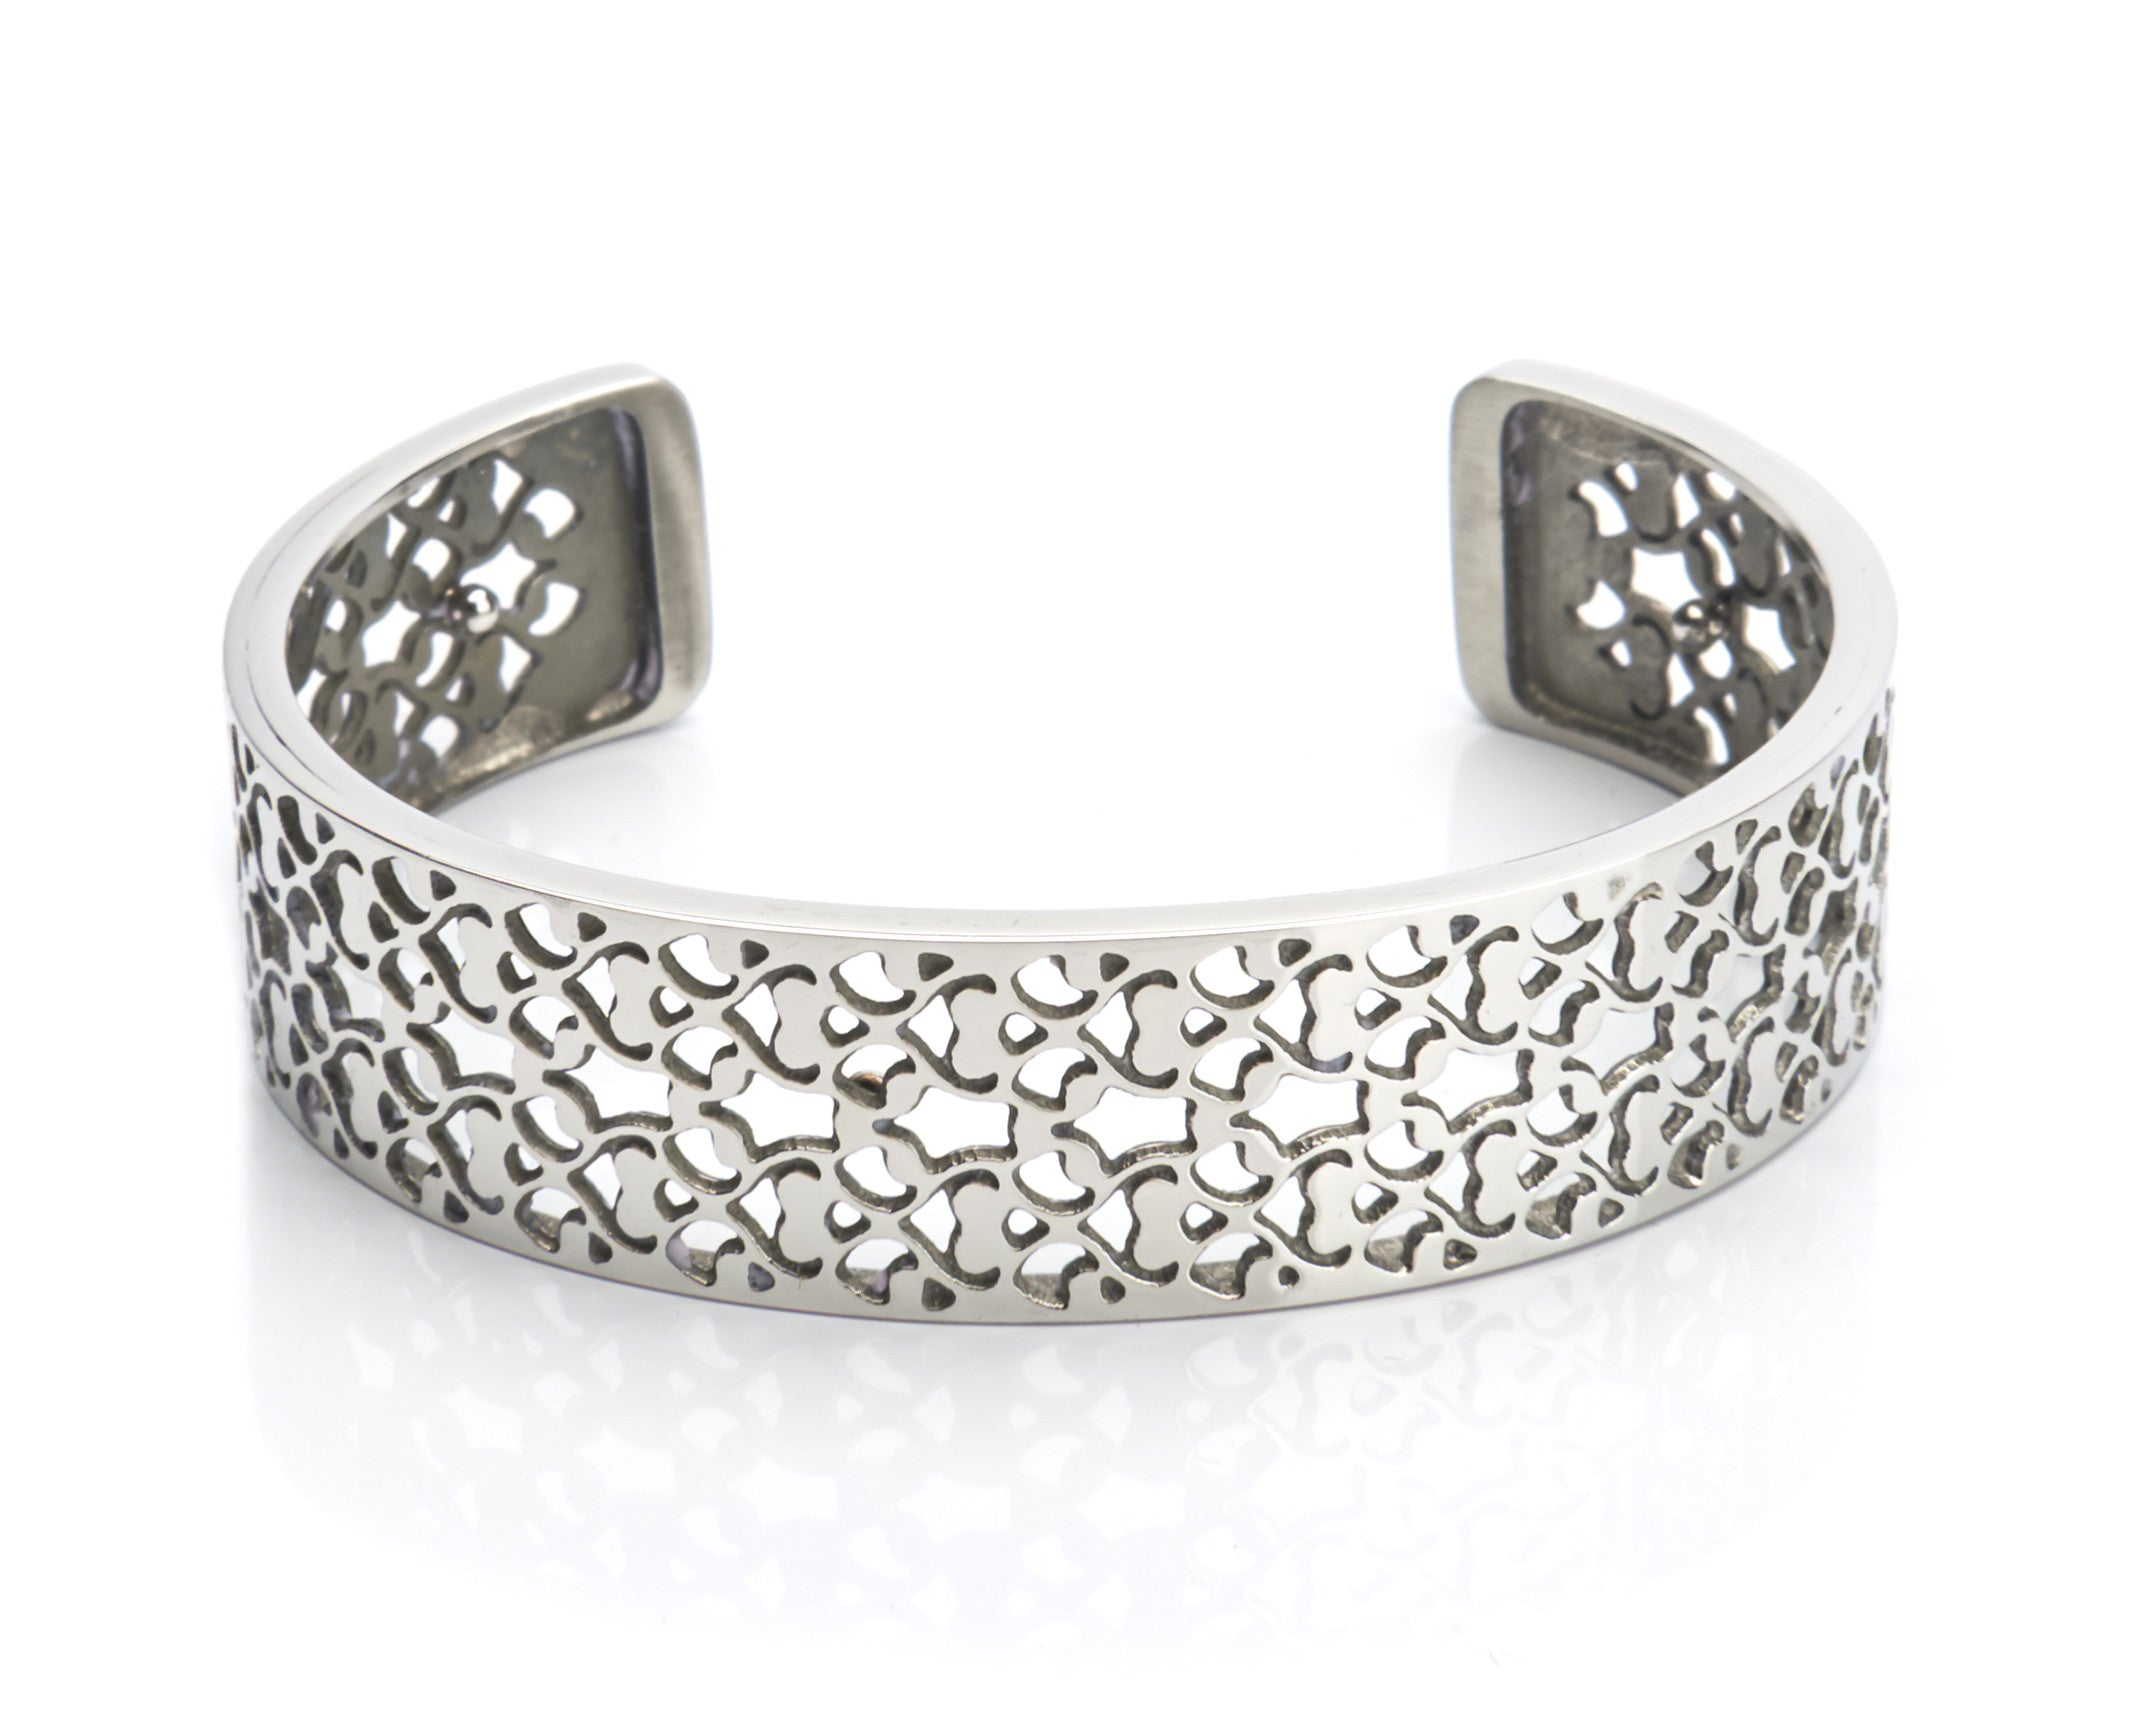 Bangle Stainless Steel - Filigree 15mm